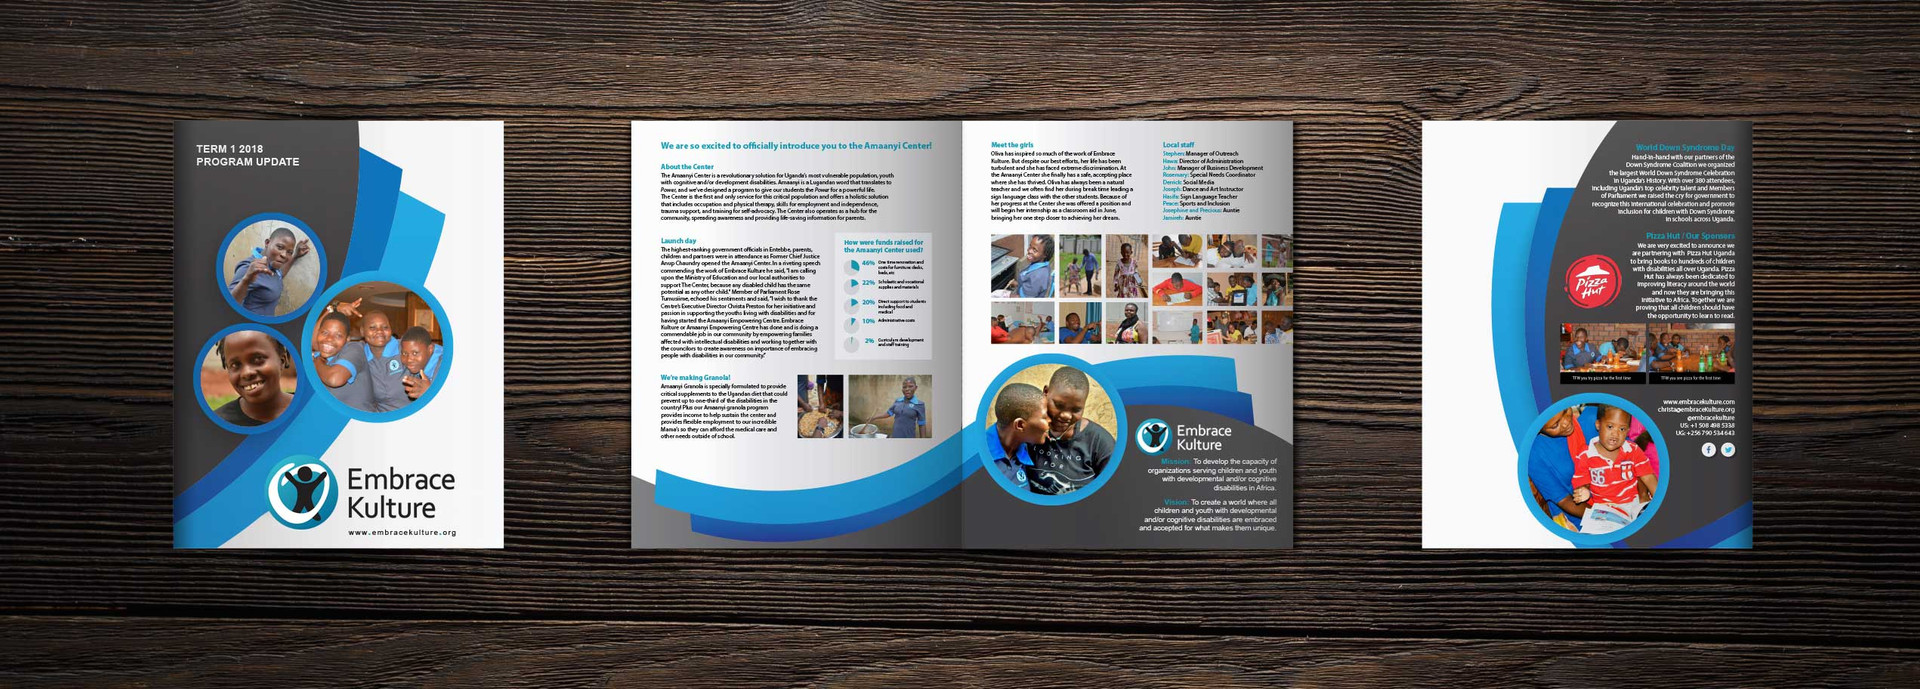 QUARTERLY NEWSLETTER, BRANDING, PRINT DESIGN